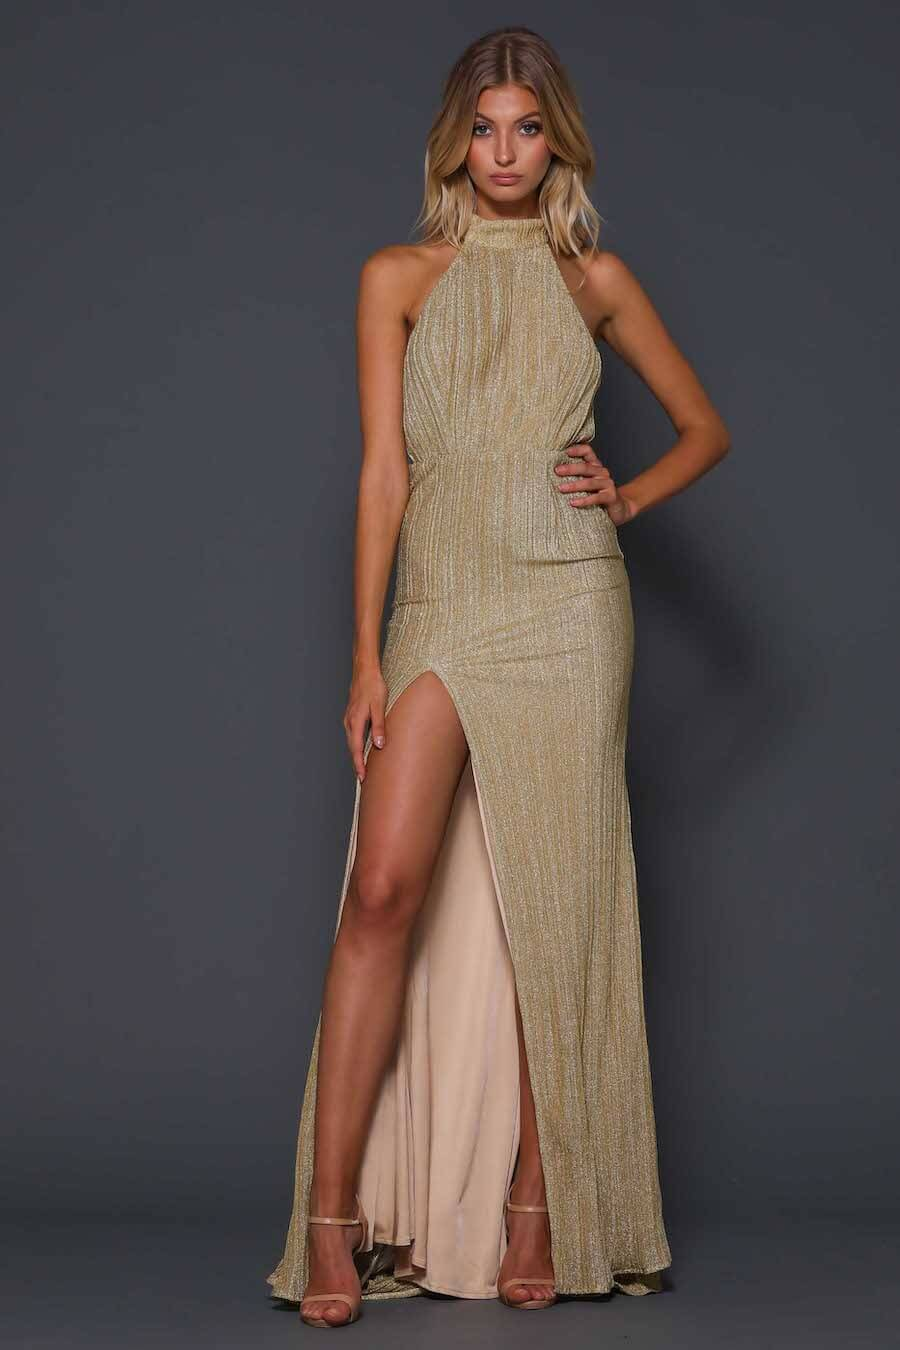 Halter neck gold full length gown with low back